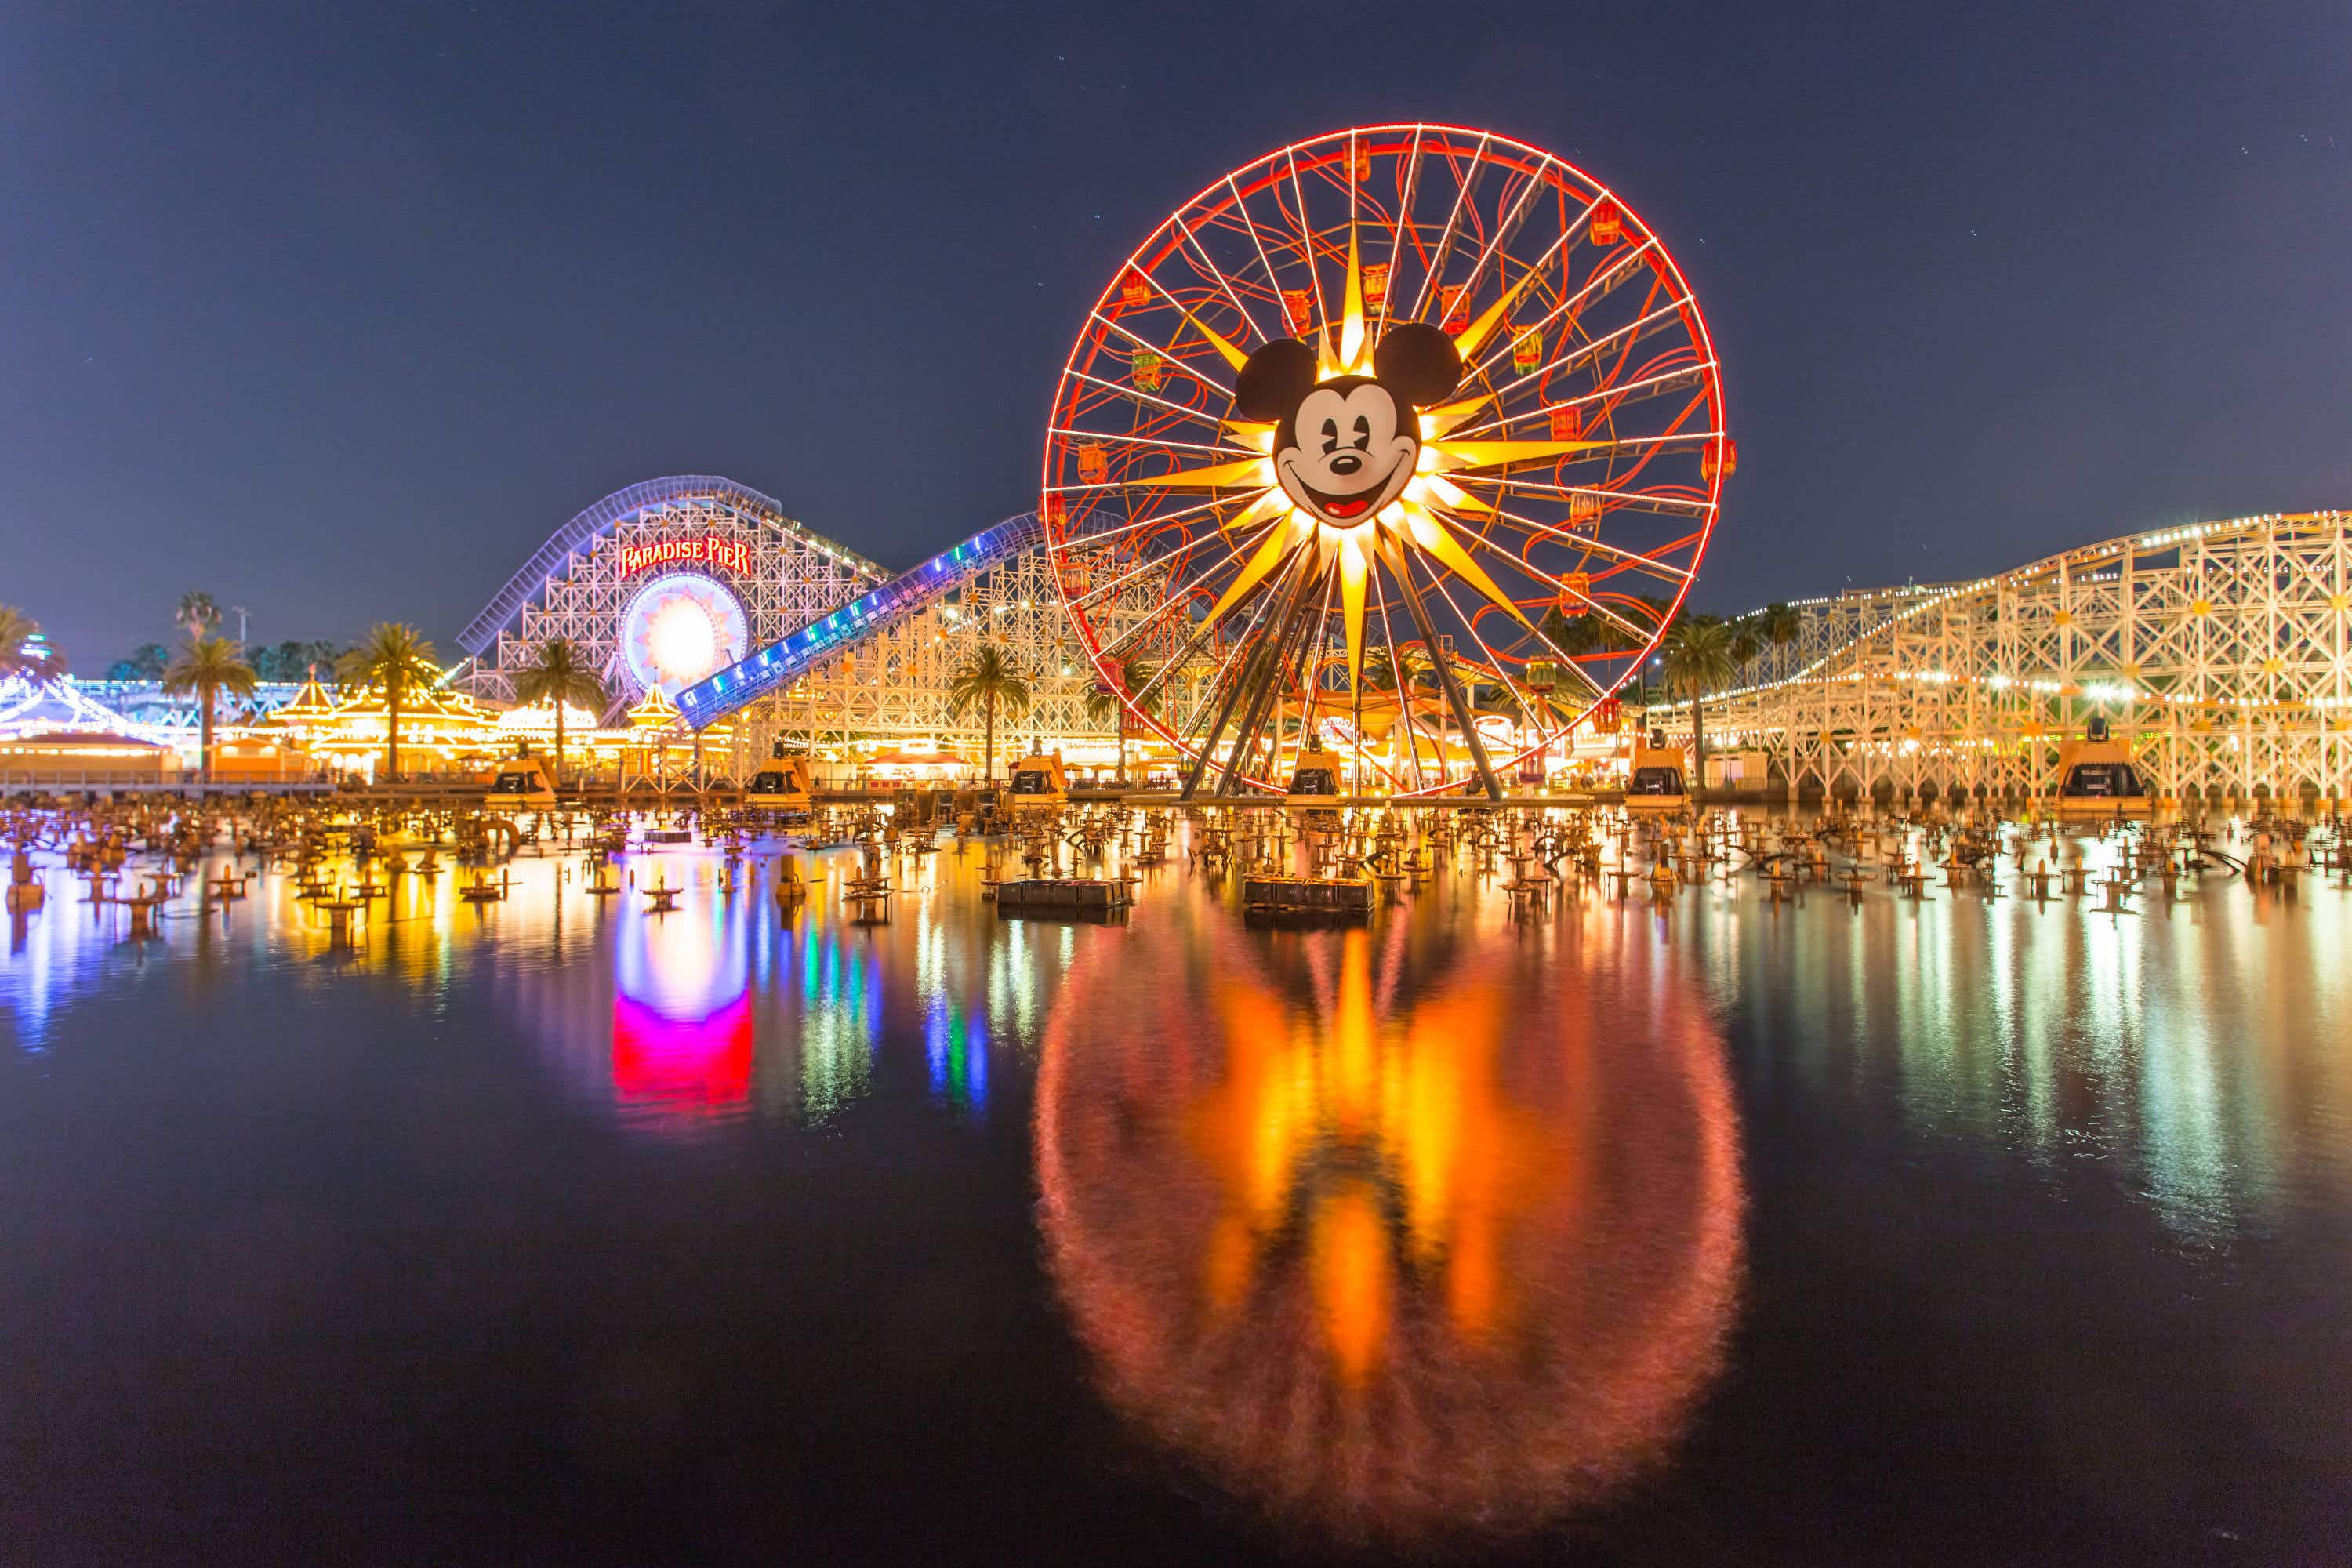 It's going to be more expensive to visit Disney theme parks in the US